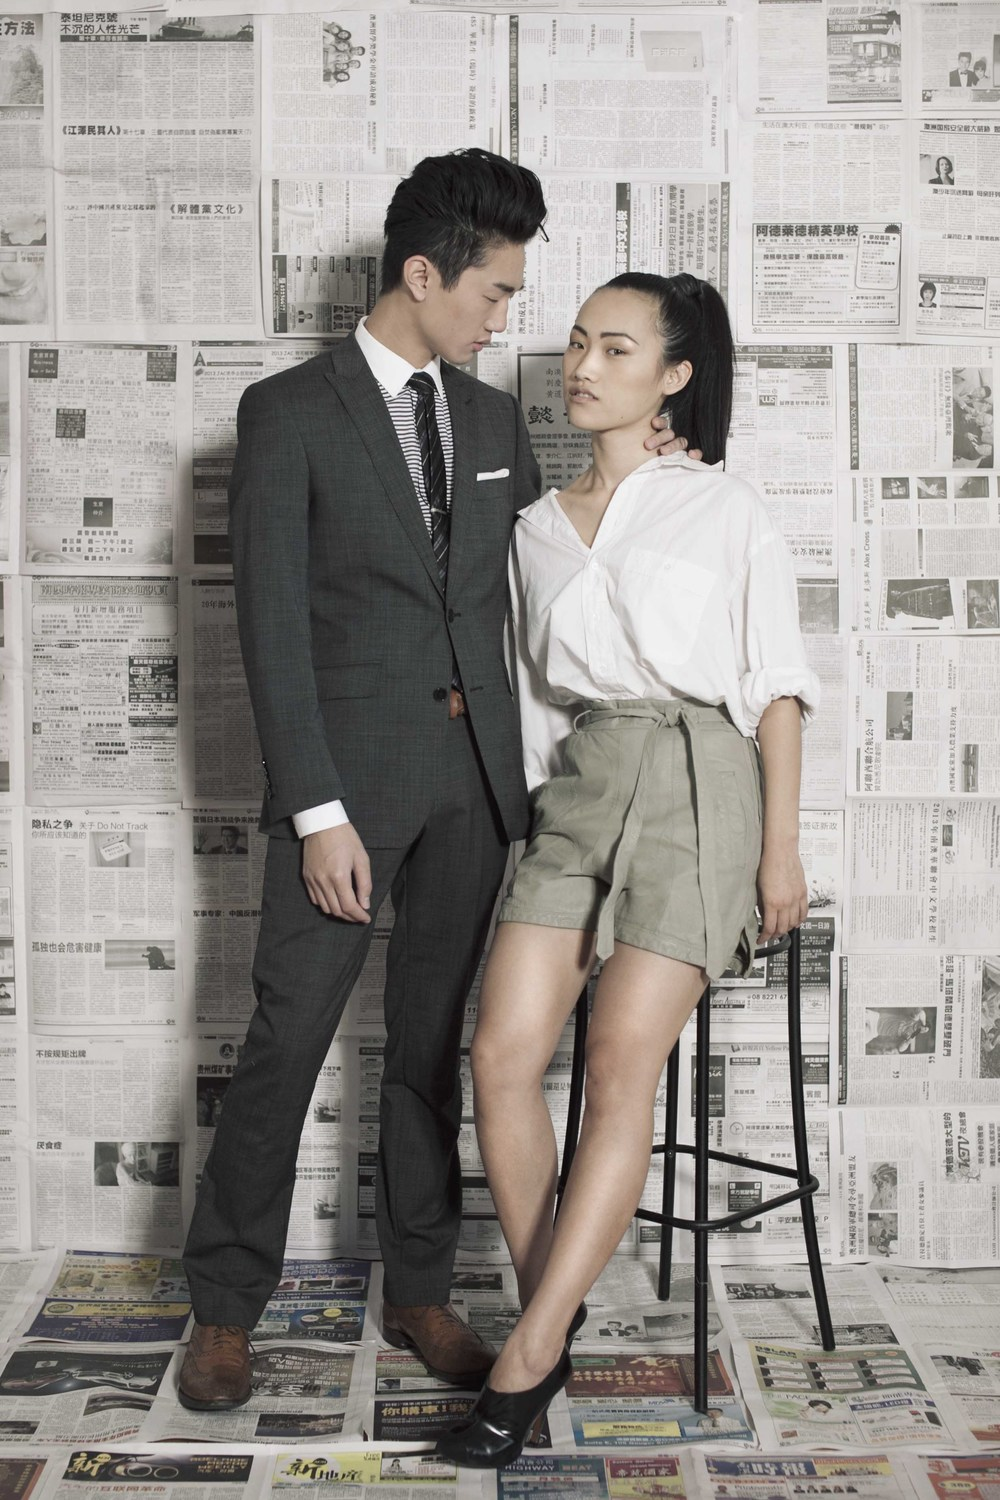 Jing wears: Yves Saint Laurent shirt, H&M leather shorts, Zara shoes. Pierre wears: Ben Sherman suit, Marcs belt, shirt and tie, Jack London tie clip, Armani Collezioni pocket square, Loake shoes.